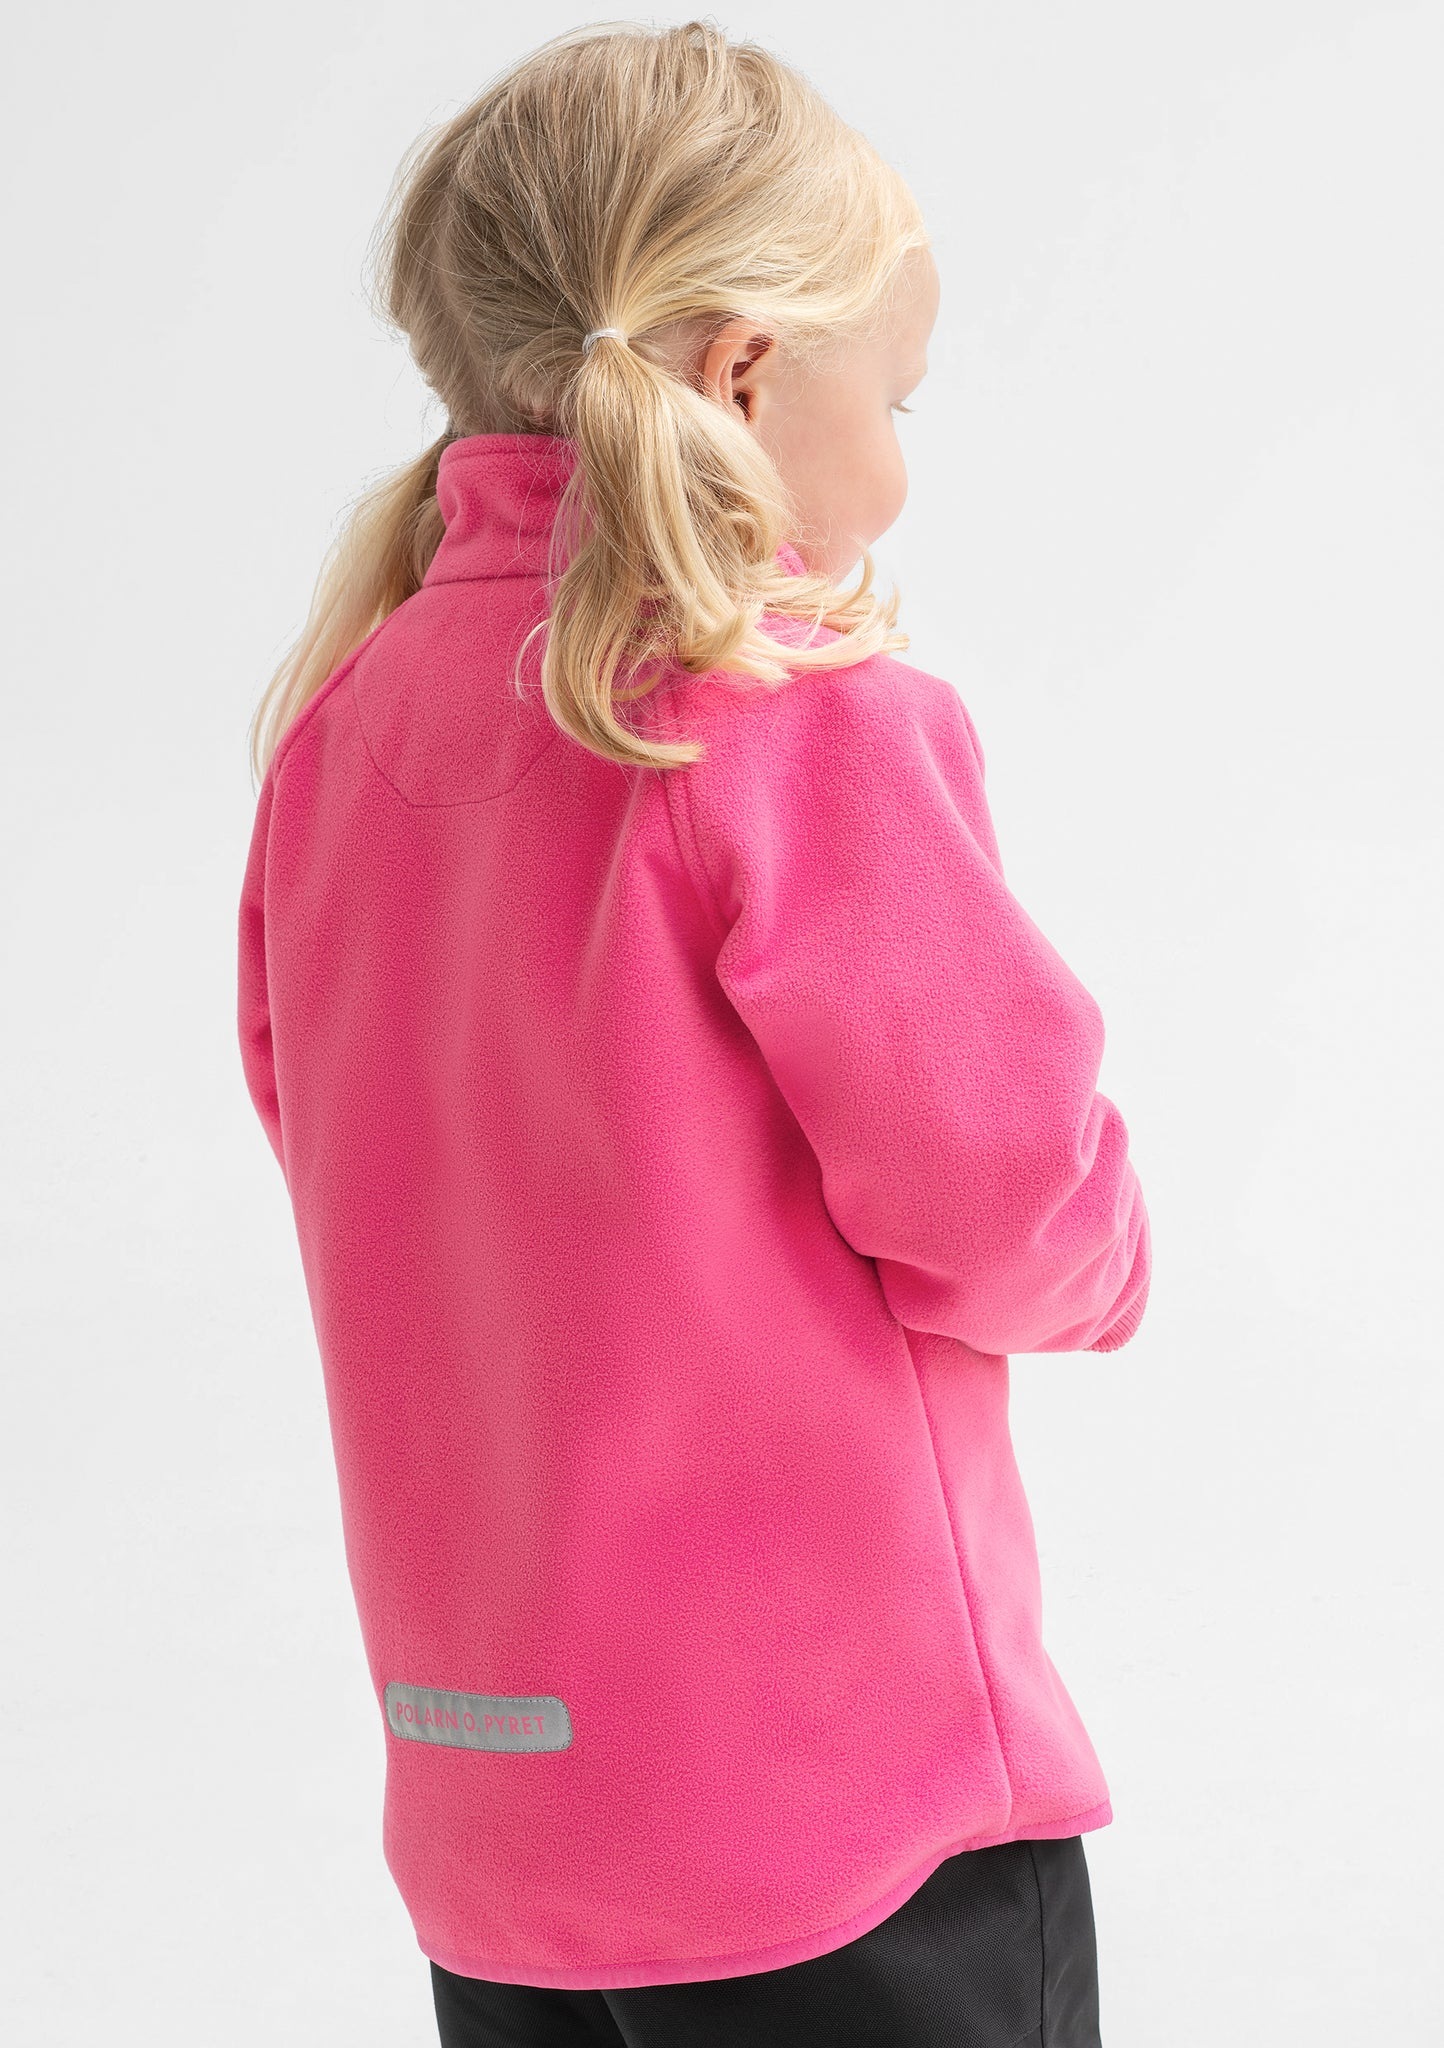 Side view of a young girl wearing a pink, kids waterproof fleece jacket, with cuff thumbholes, made of soft fabric.